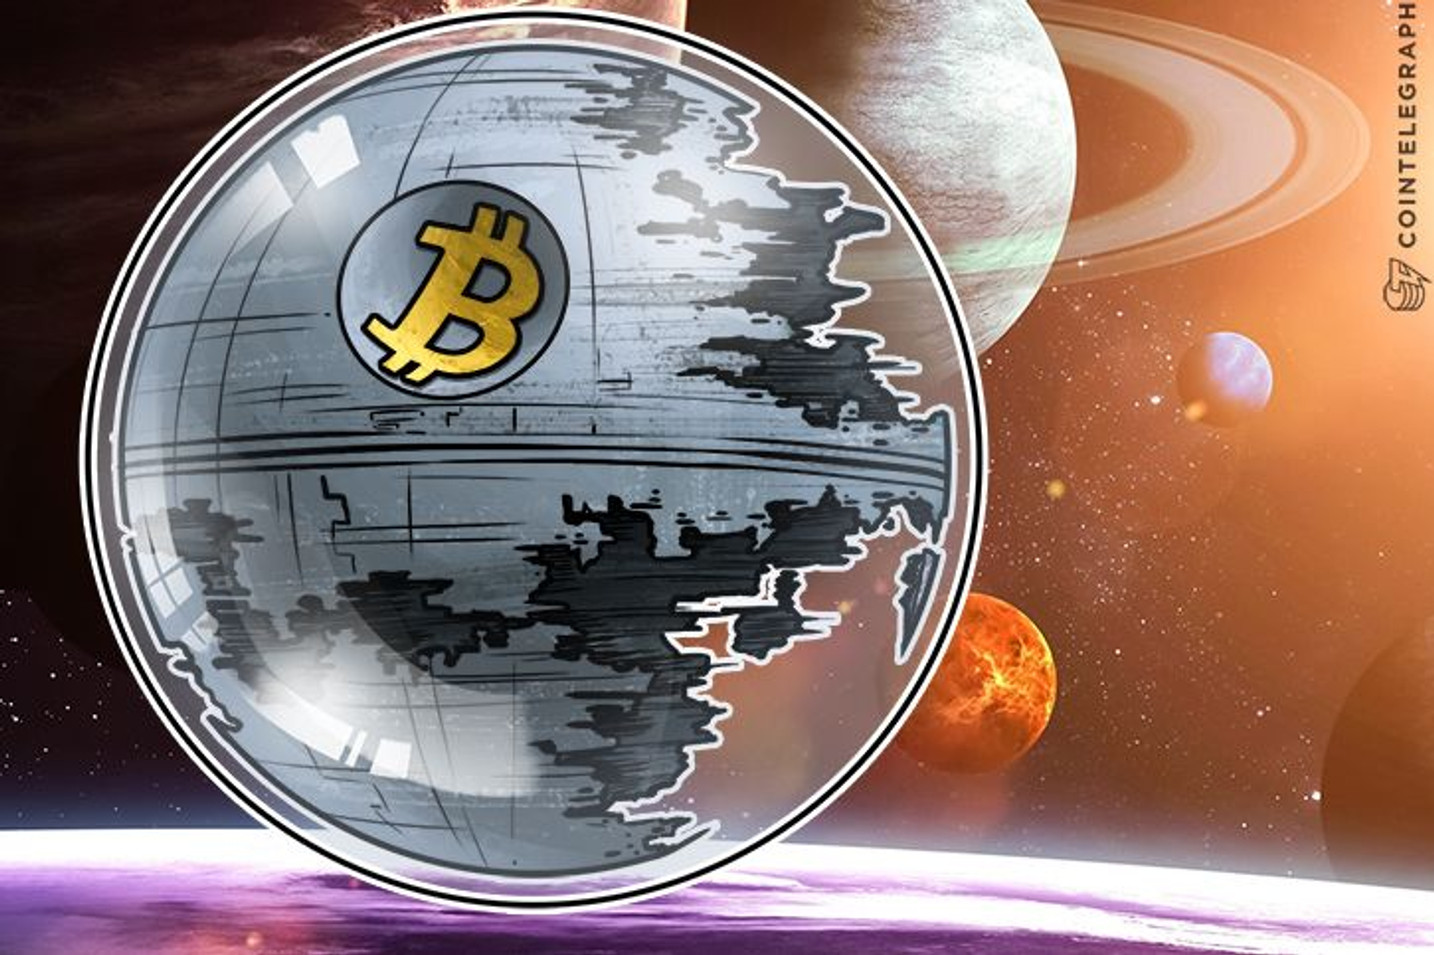 Billionaire Carl Icahn Doesn't Get Bitcoin, Sees A Bubble